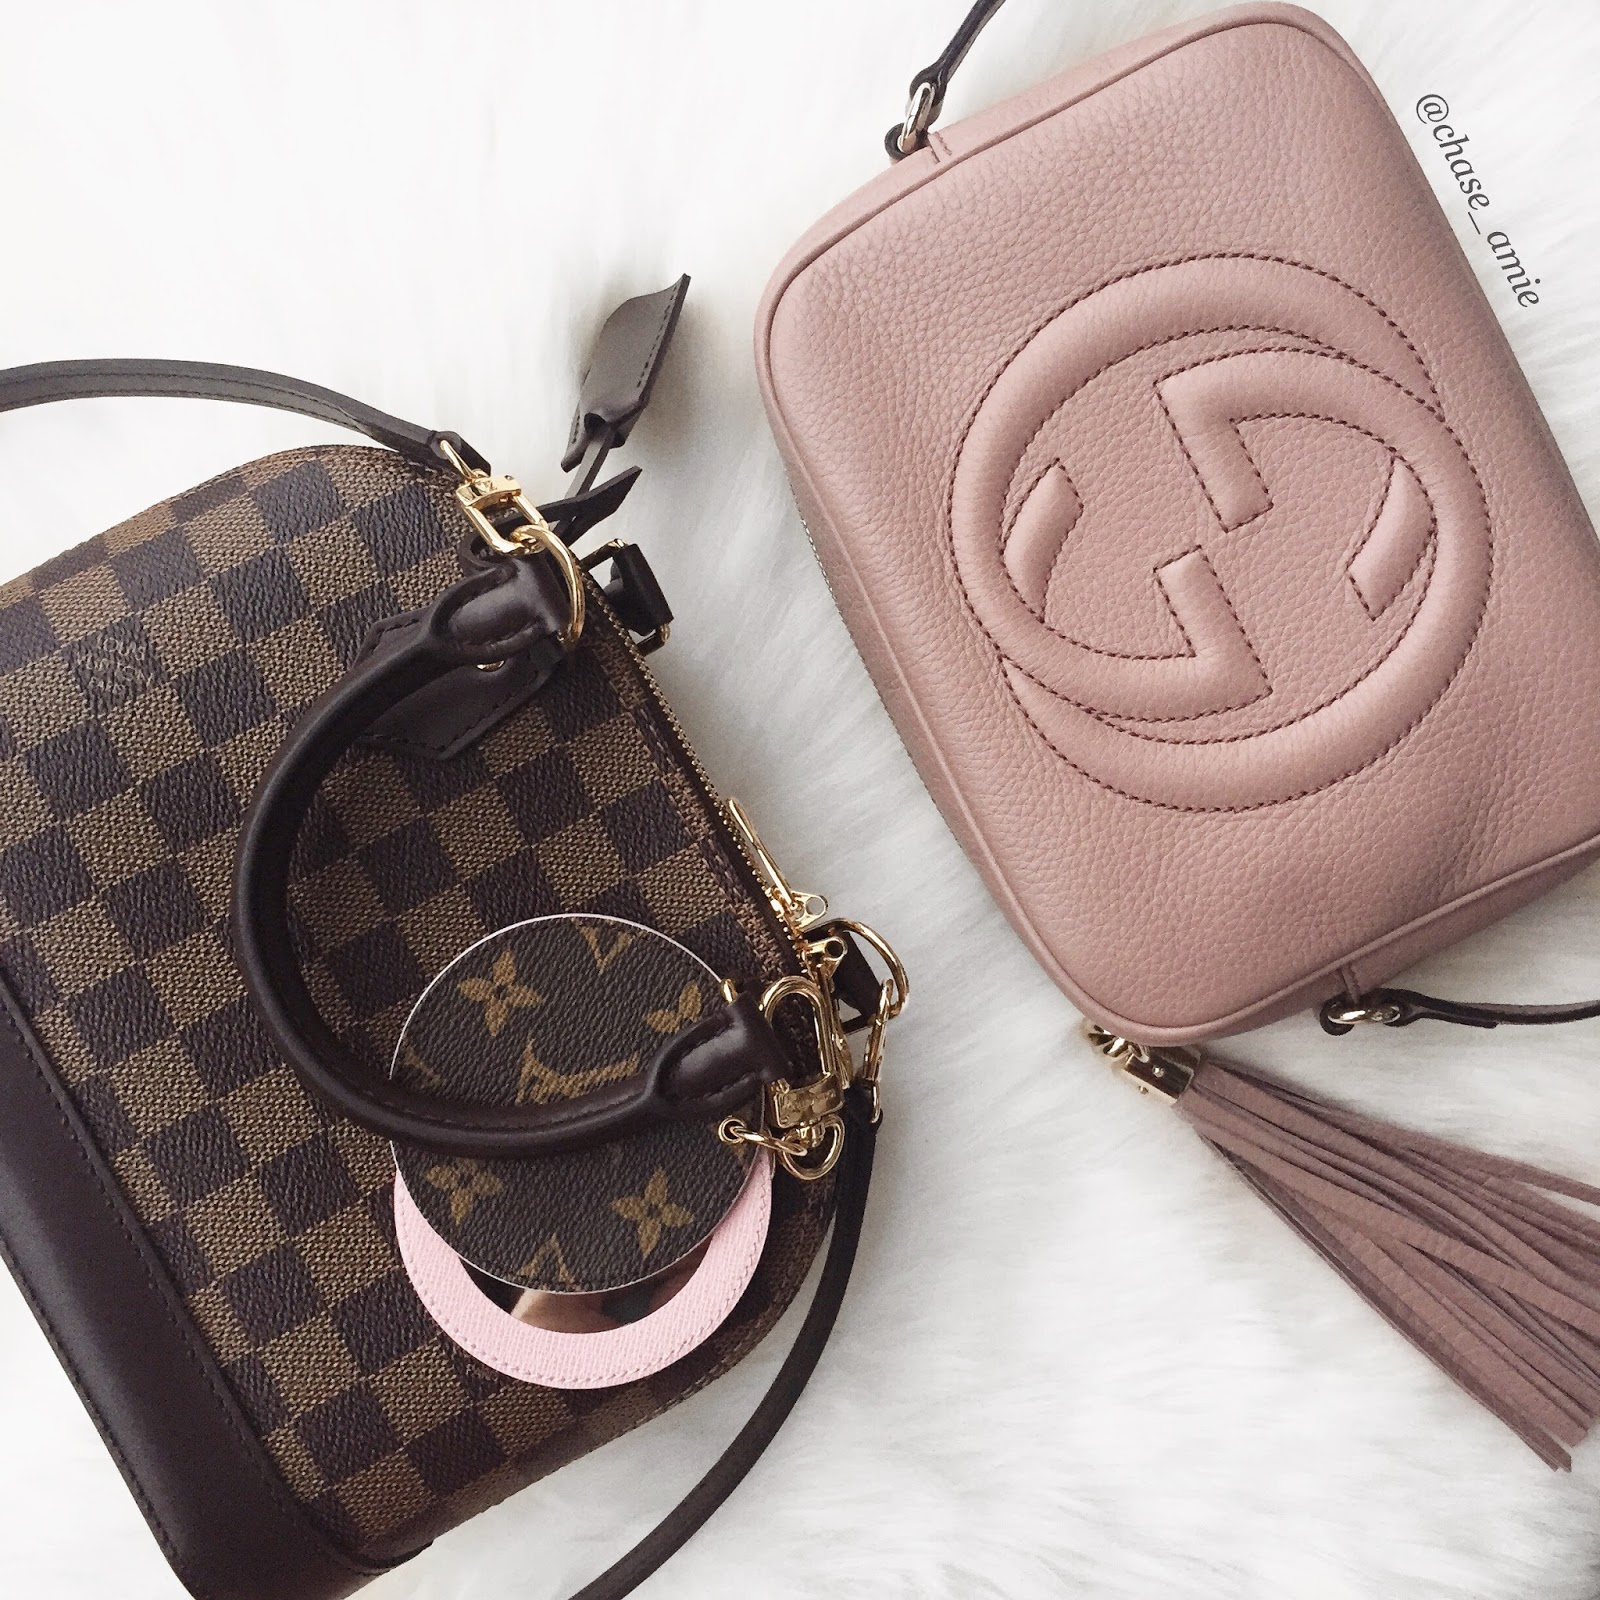 e5e100ba469 Gucci Soho Disco in Pink just restocked!! - Chase Amie